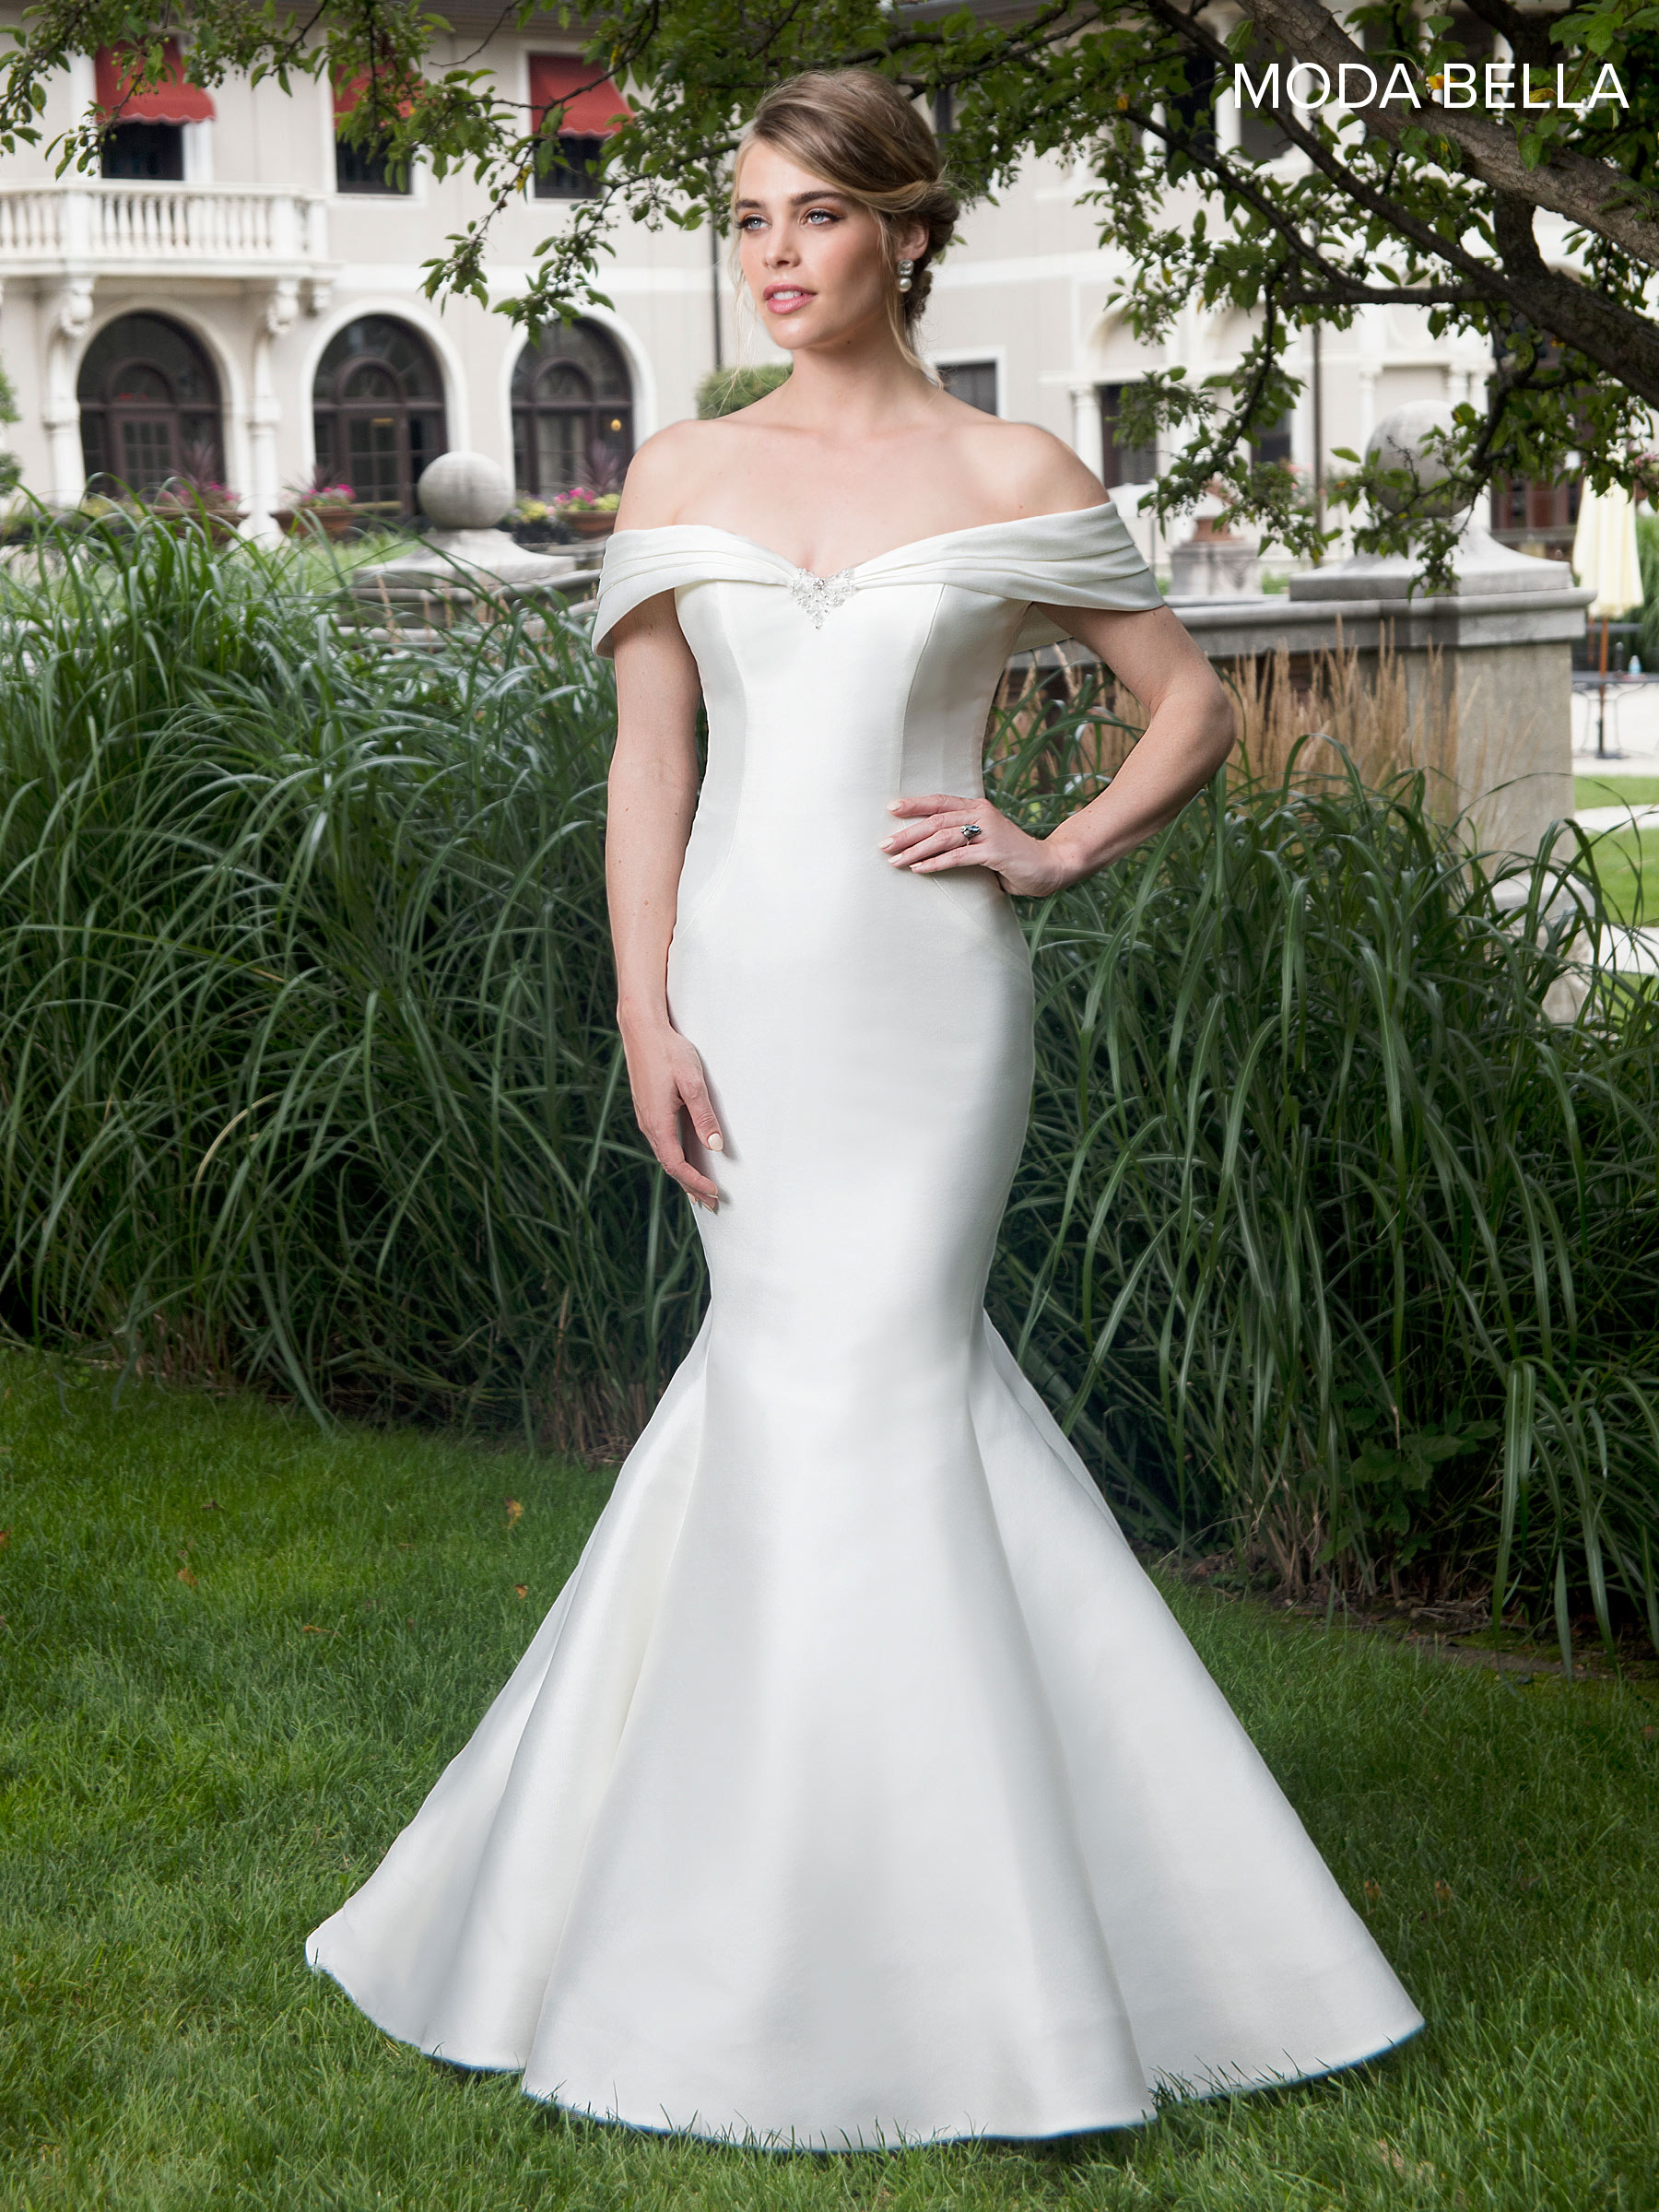 Decollete ivory wedding dress with lace bodice and net overlay from the Michelle Bridal Collection